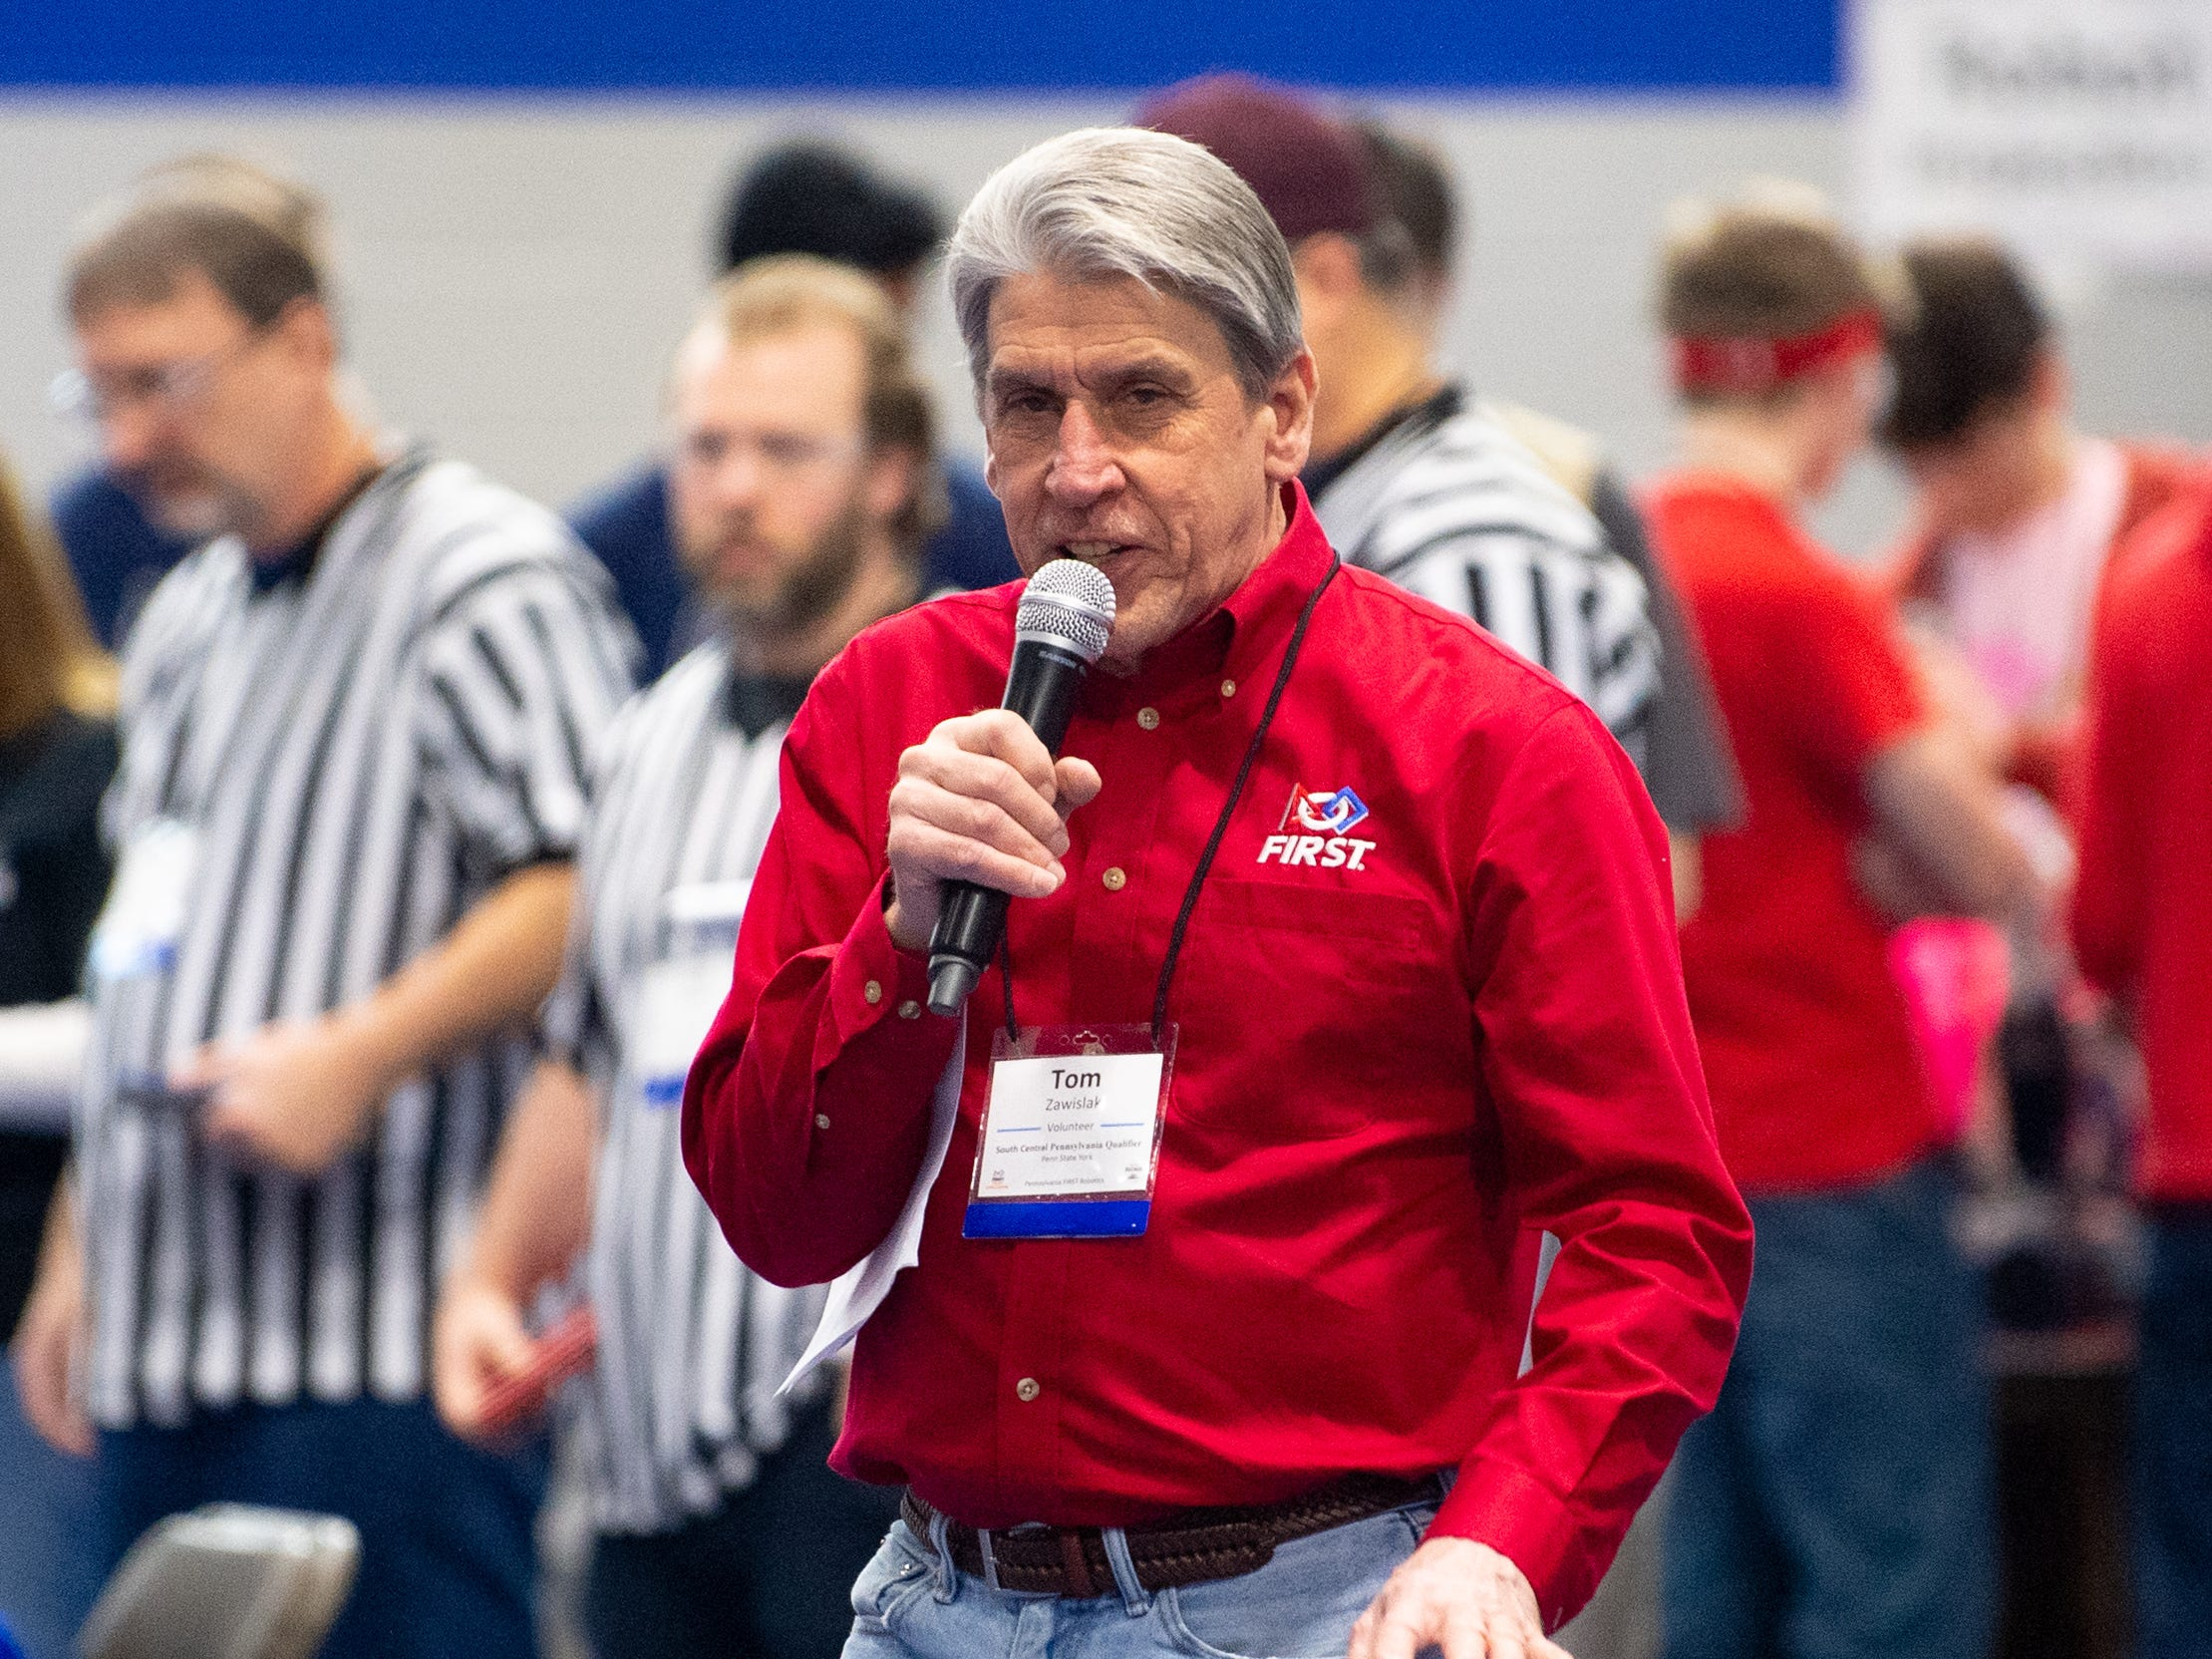 In the open ceremony, Tom Zawislak welcomes everyone to the First Tech Challenge robotics competition at Penn State York, February 2, 2019.